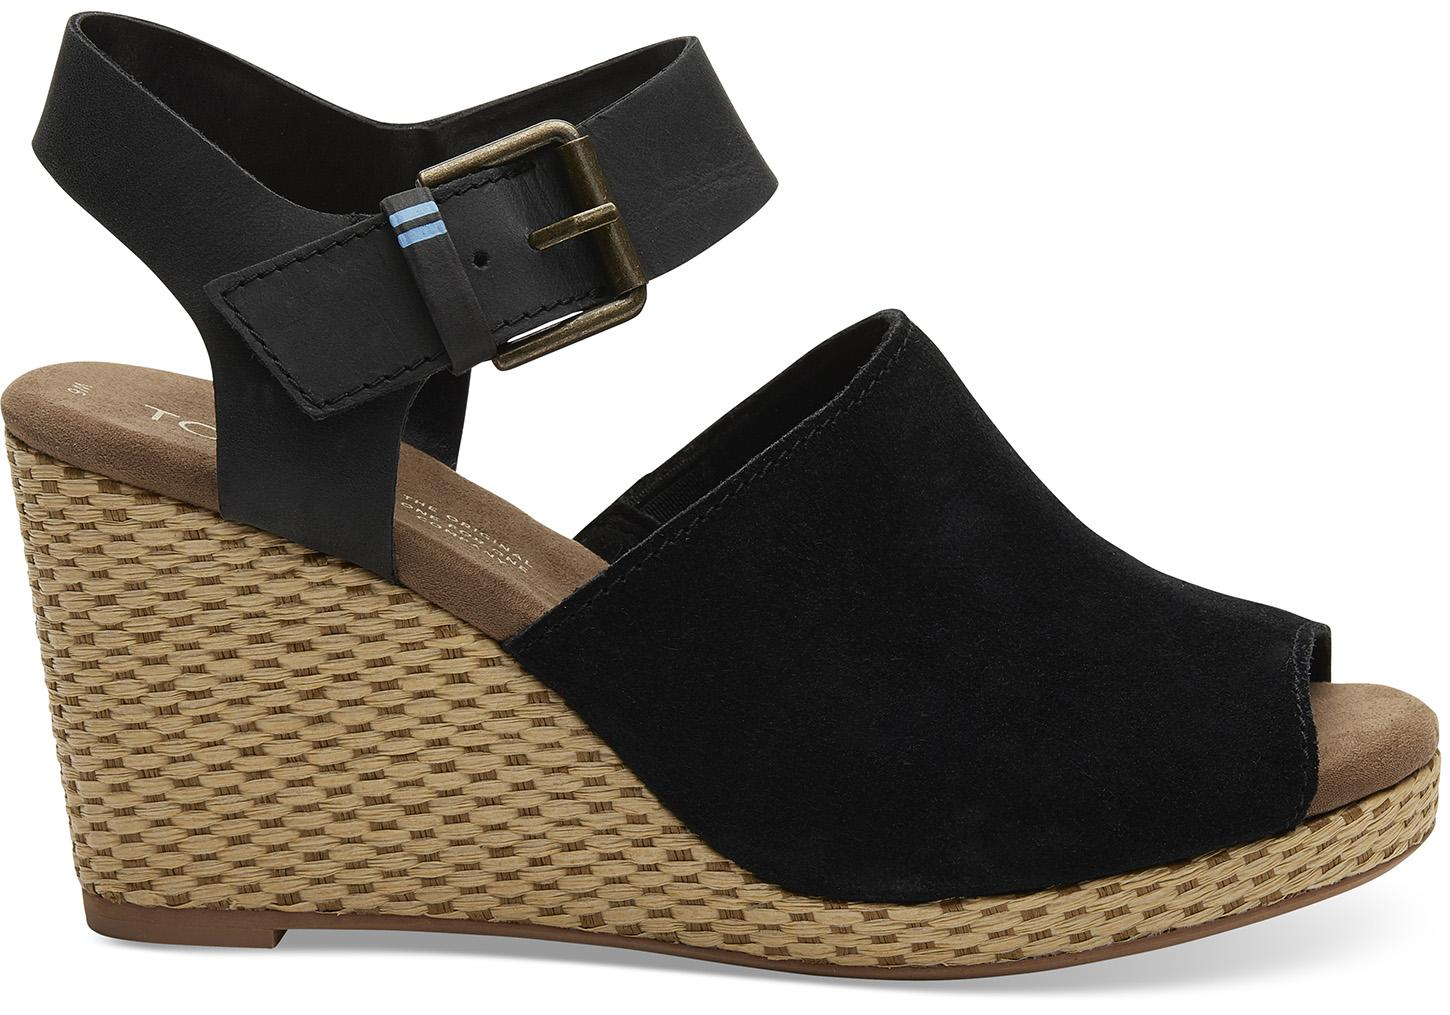 c629032e1e70 Lyst - Toms Black Suede And Leather Women s Tropez Wedges in Black